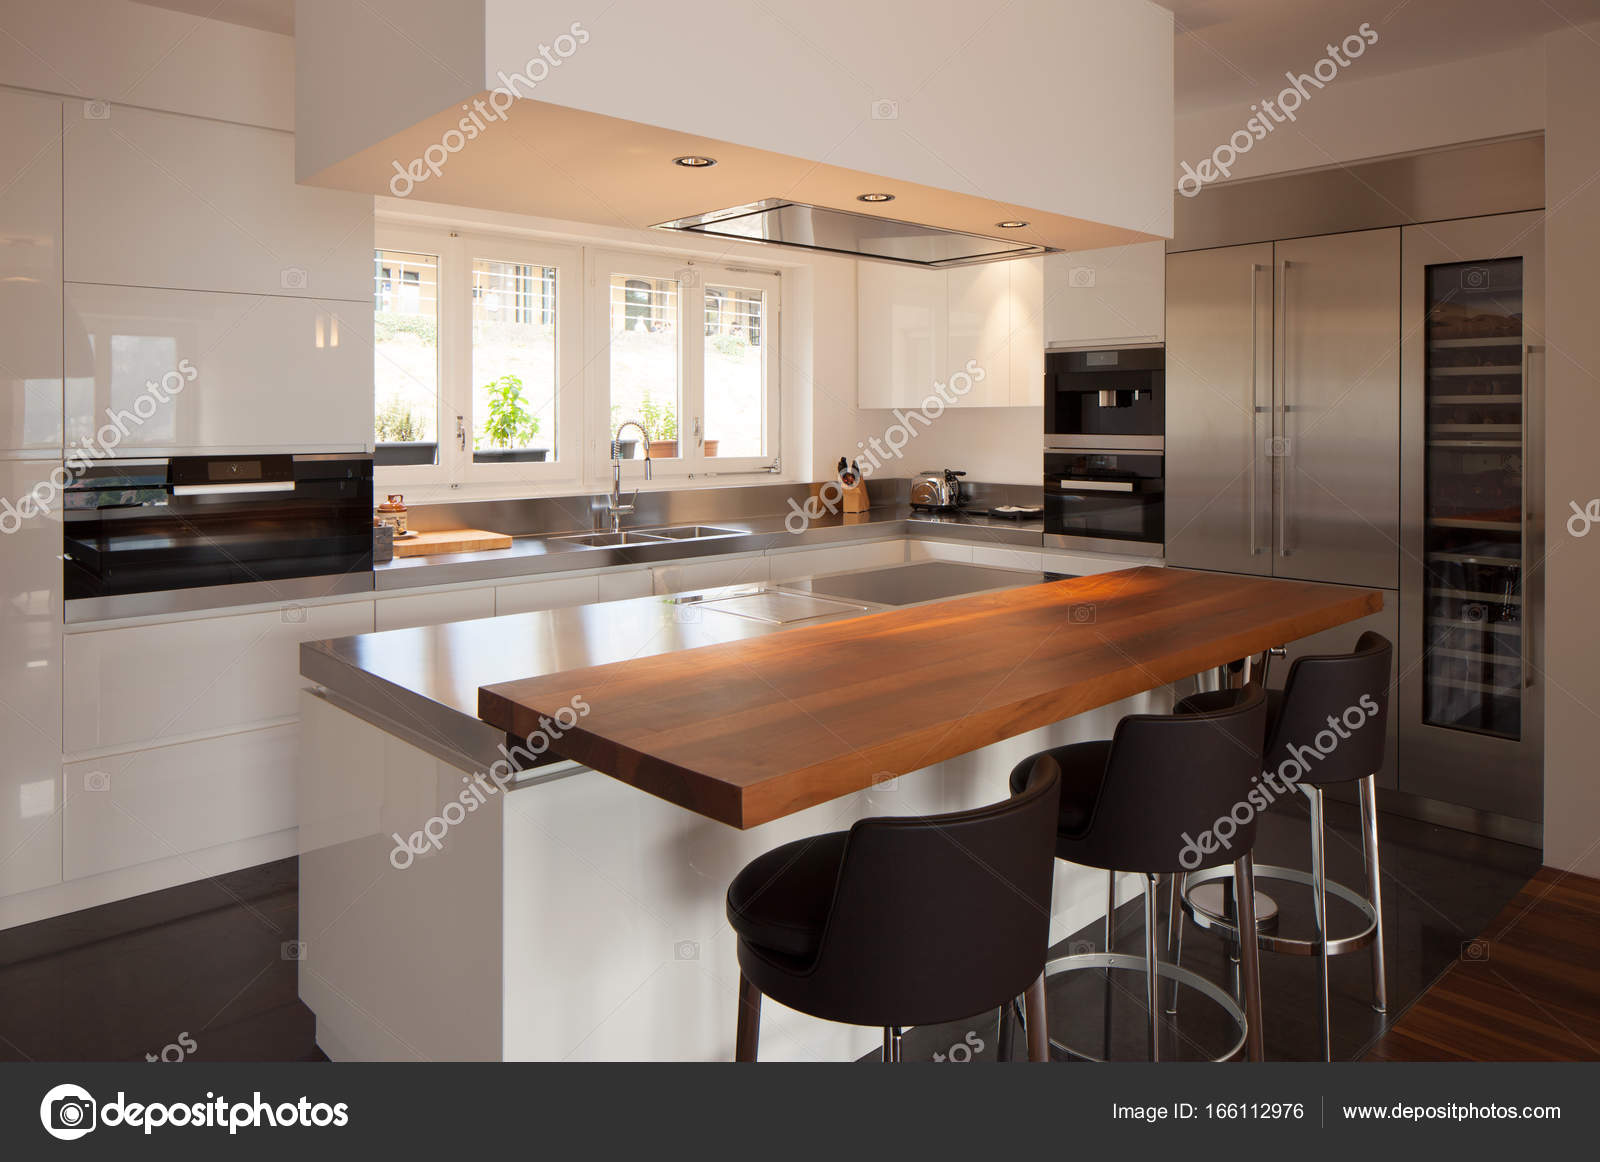 Moderne Küche in Luxus-Appartement — Stockfoto © Zveiger #166112976